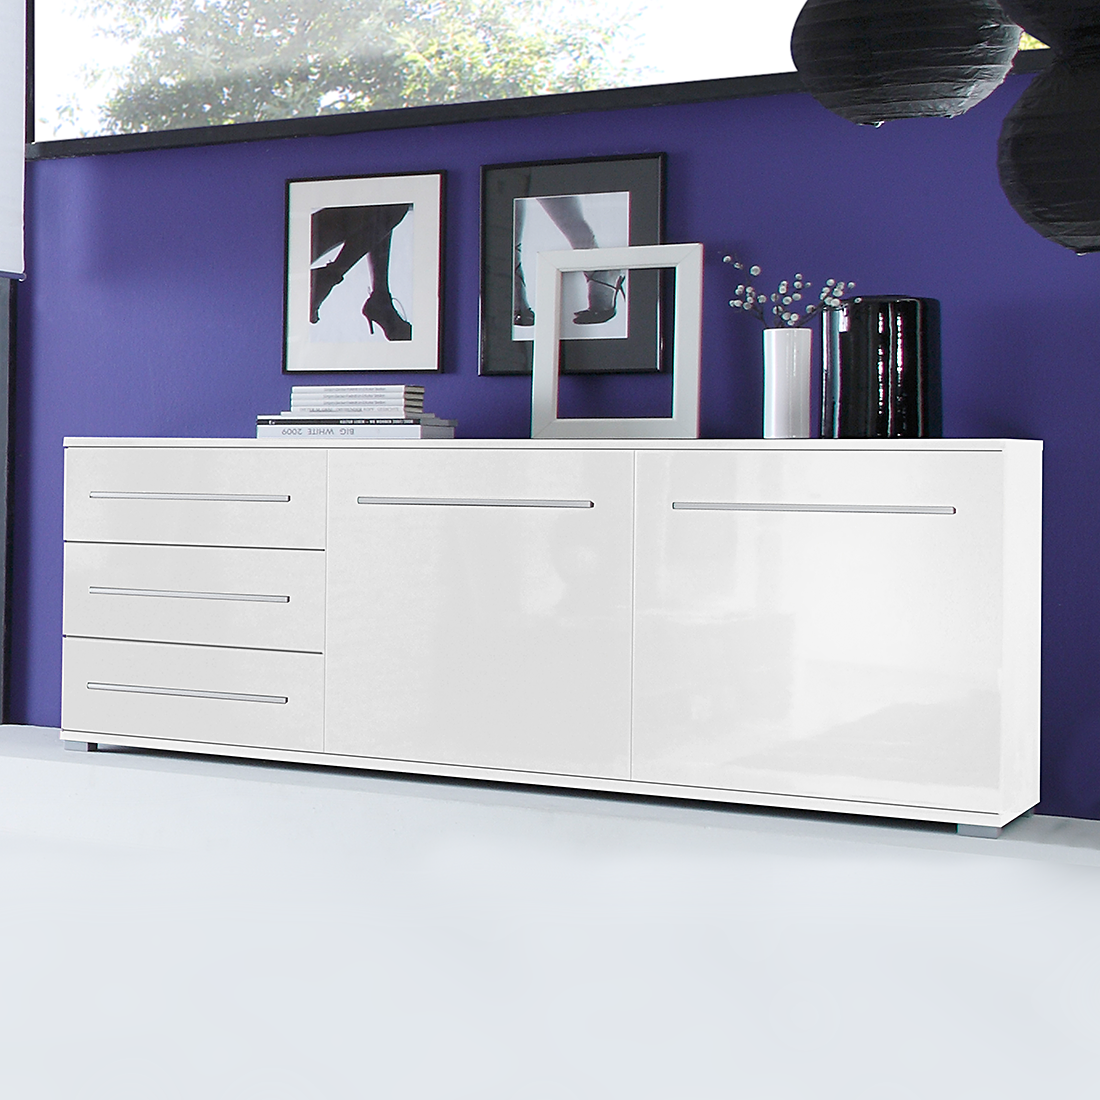 sideboard wei hochglanz kommode anrichte wohnzimmer esszimmer schrank neu ebay. Black Bedroom Furniture Sets. Home Design Ideas